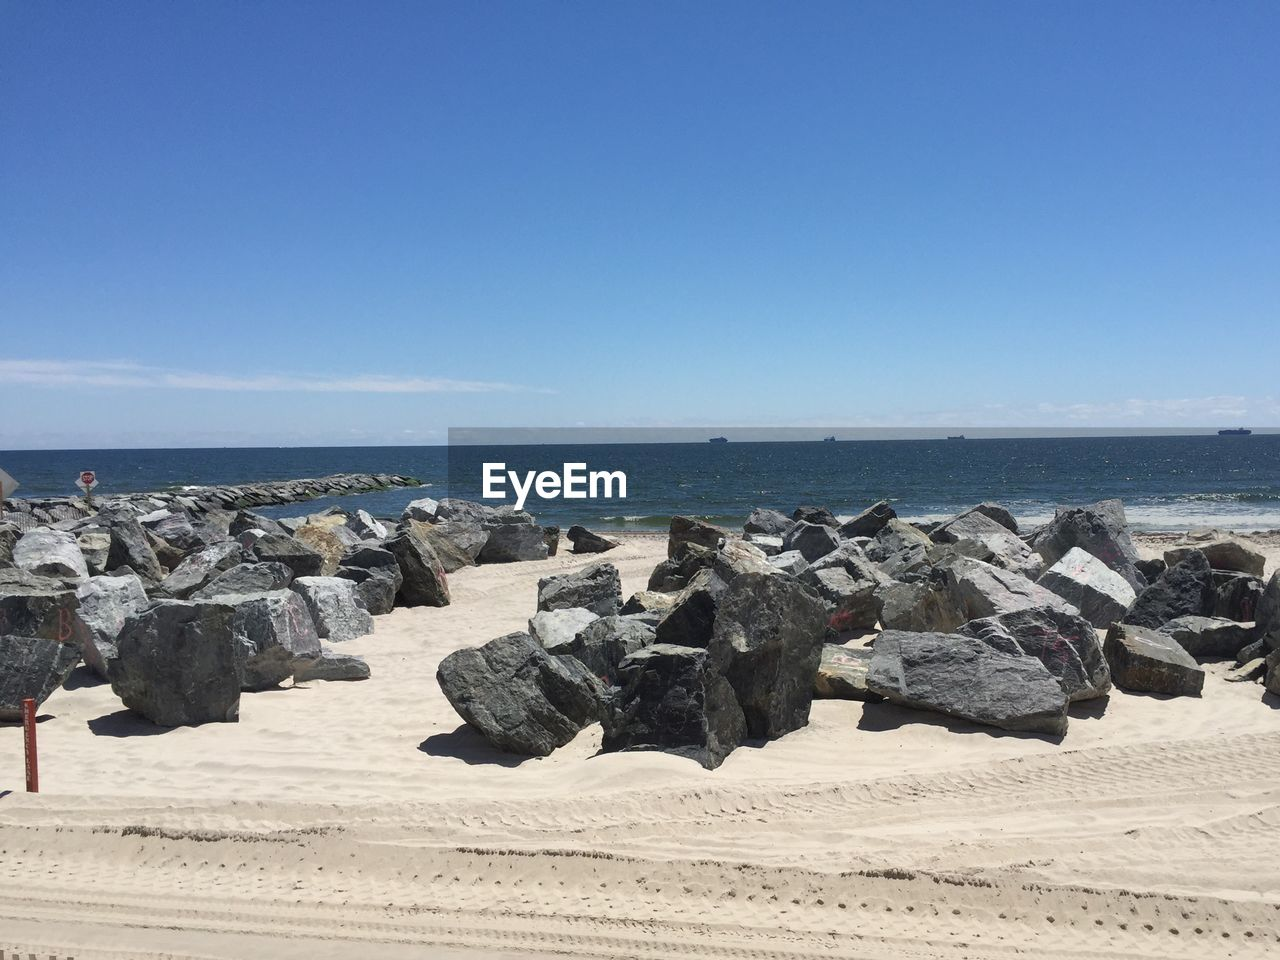 sea, beach, horizon over water, sand, nature, blue, clear sky, water, scenics, day, rock - object, beauty in nature, sky, tranquil scene, sunlight, tranquility, outdoors, no people